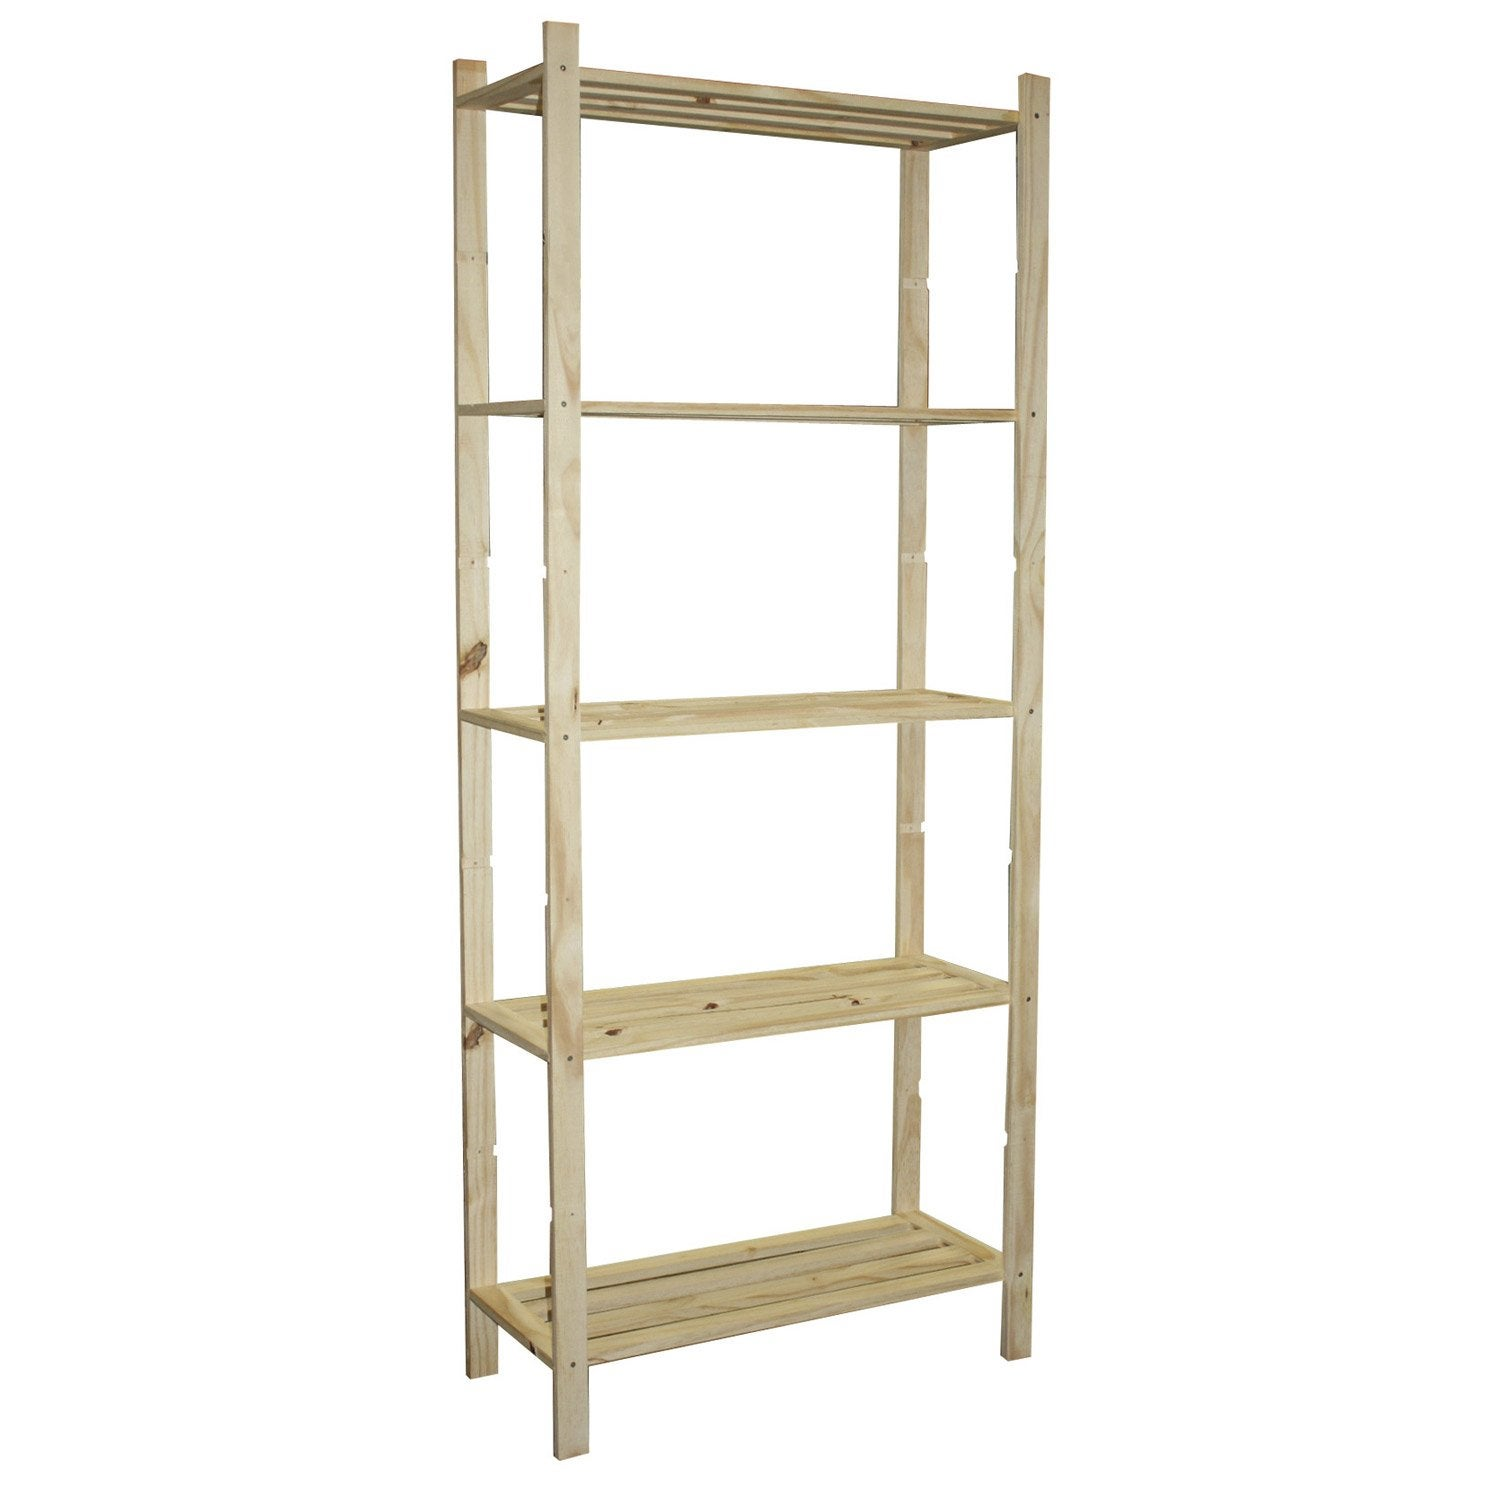 Etag re pin 5 tablettes x x cm leroy merlin - Leroy merlin etagere metal ...